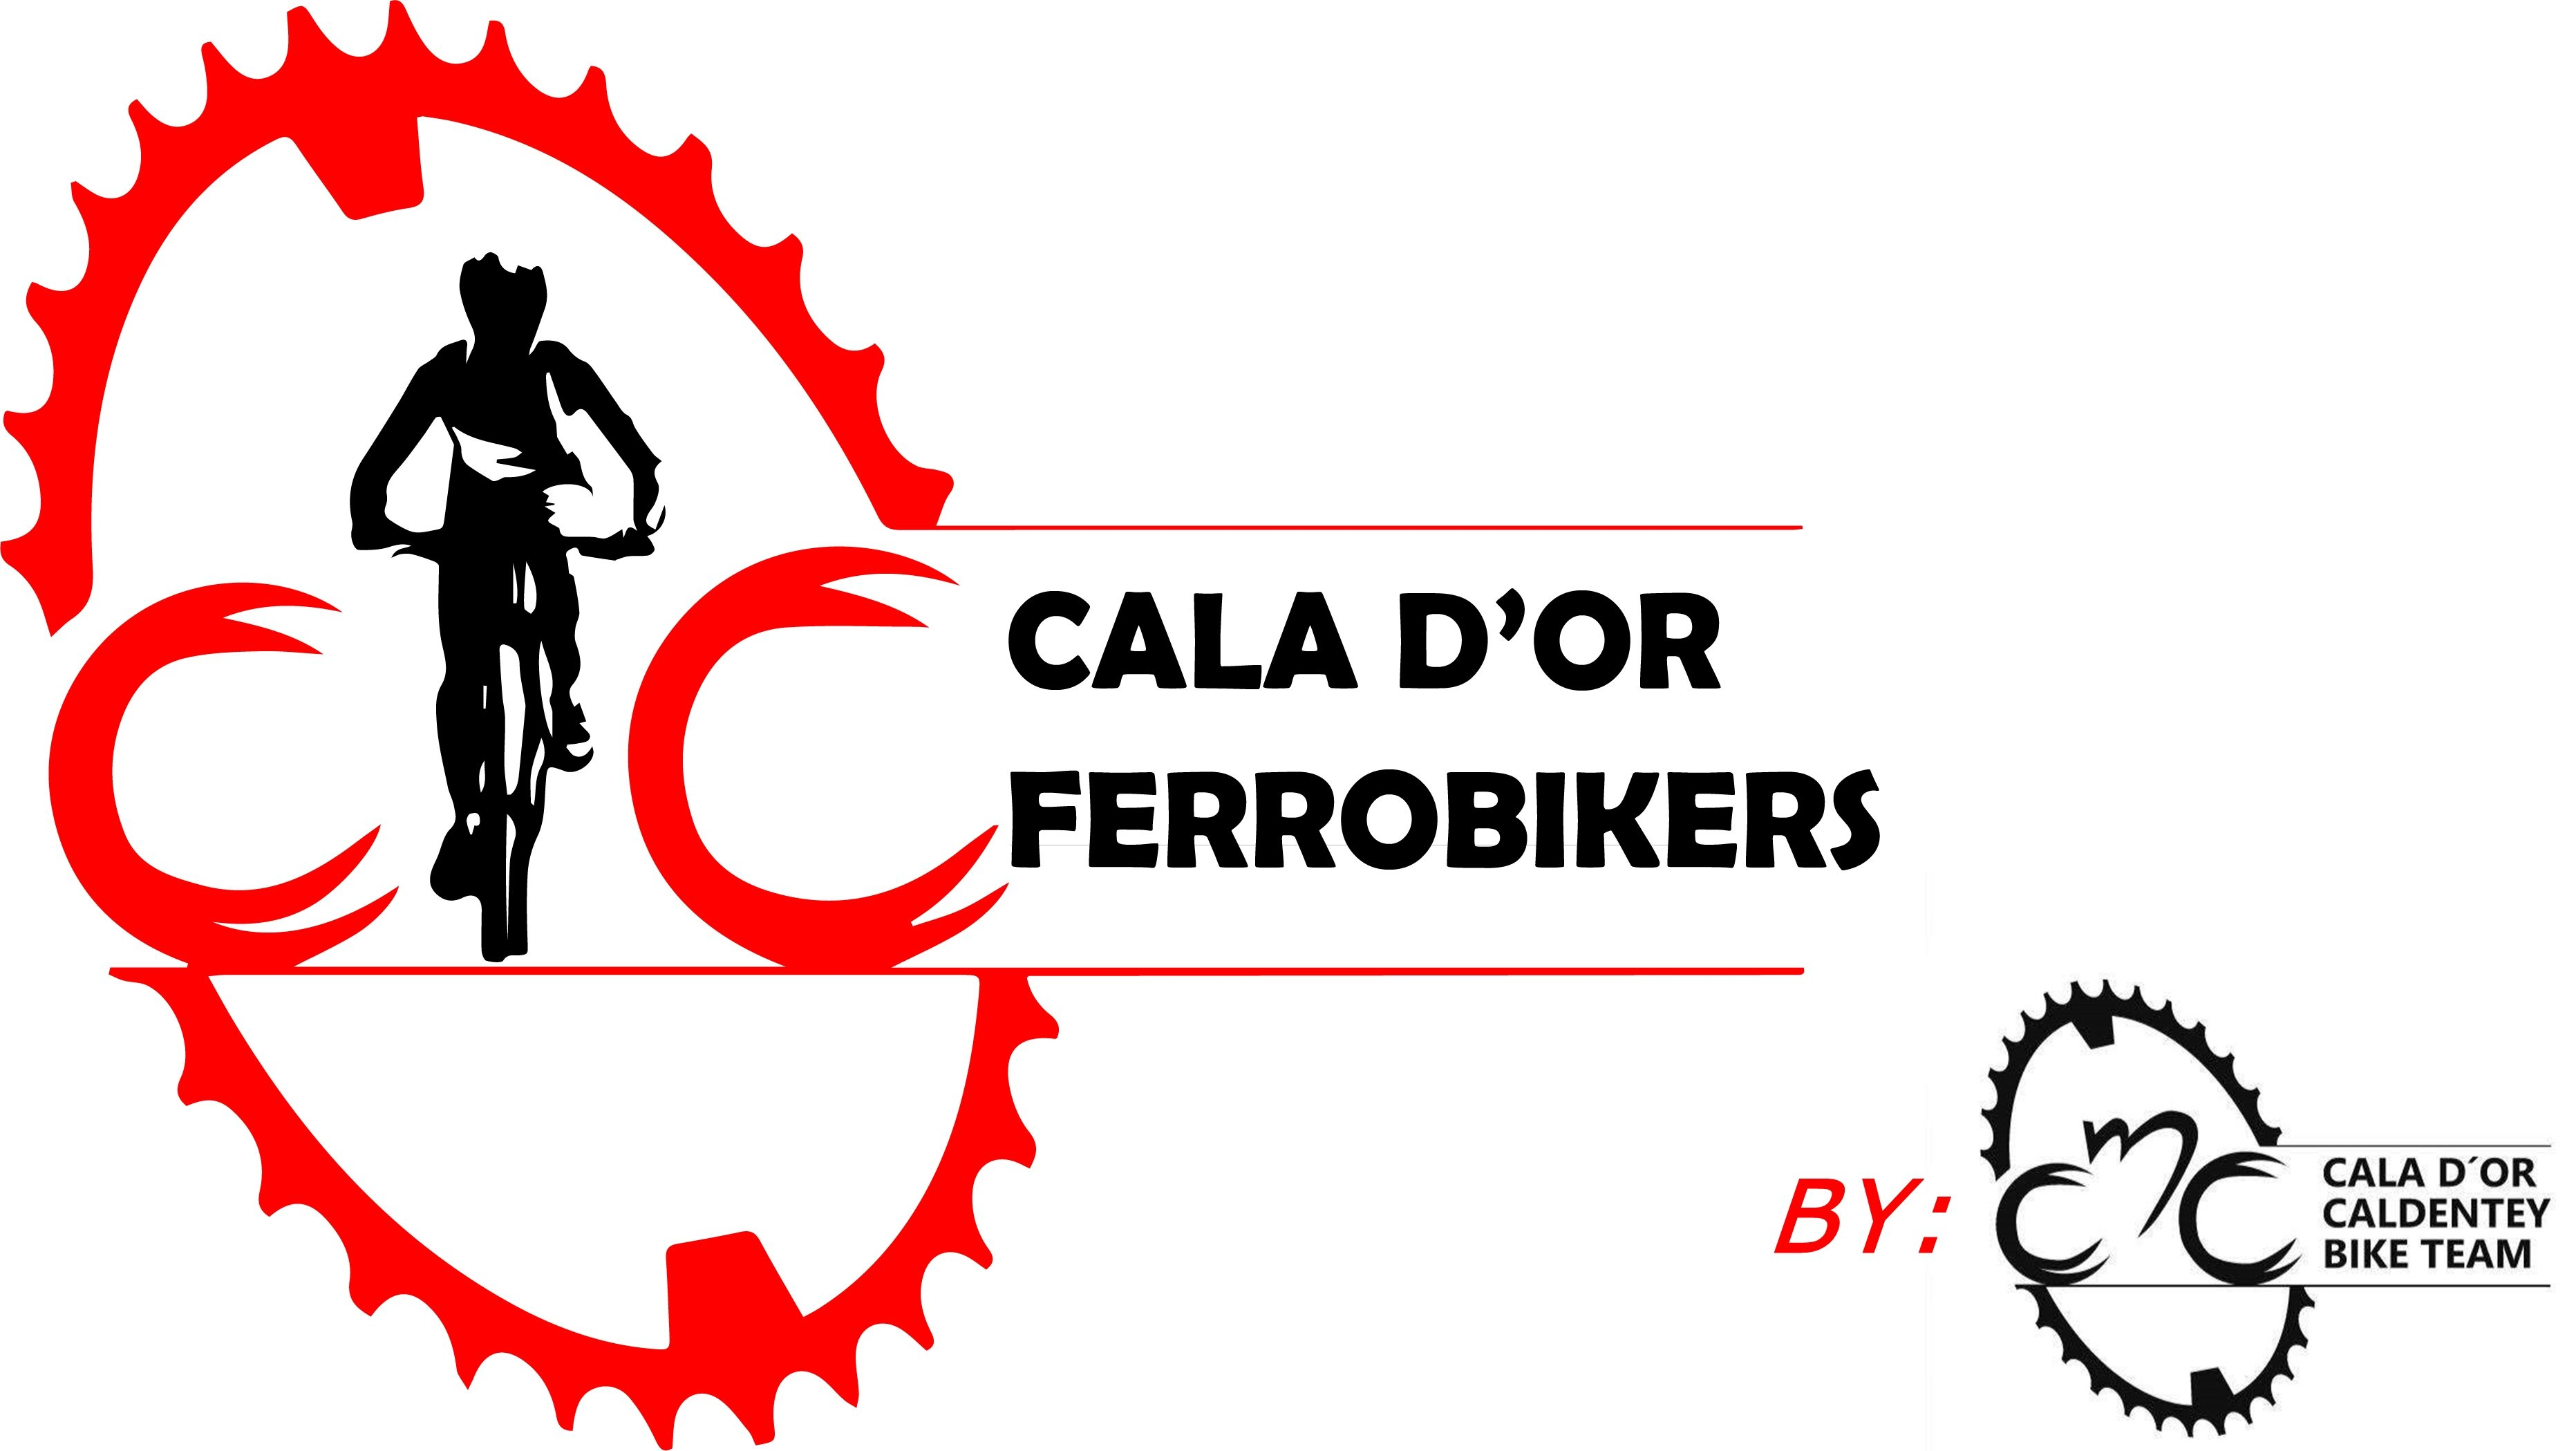 cala d'or ferrobikers